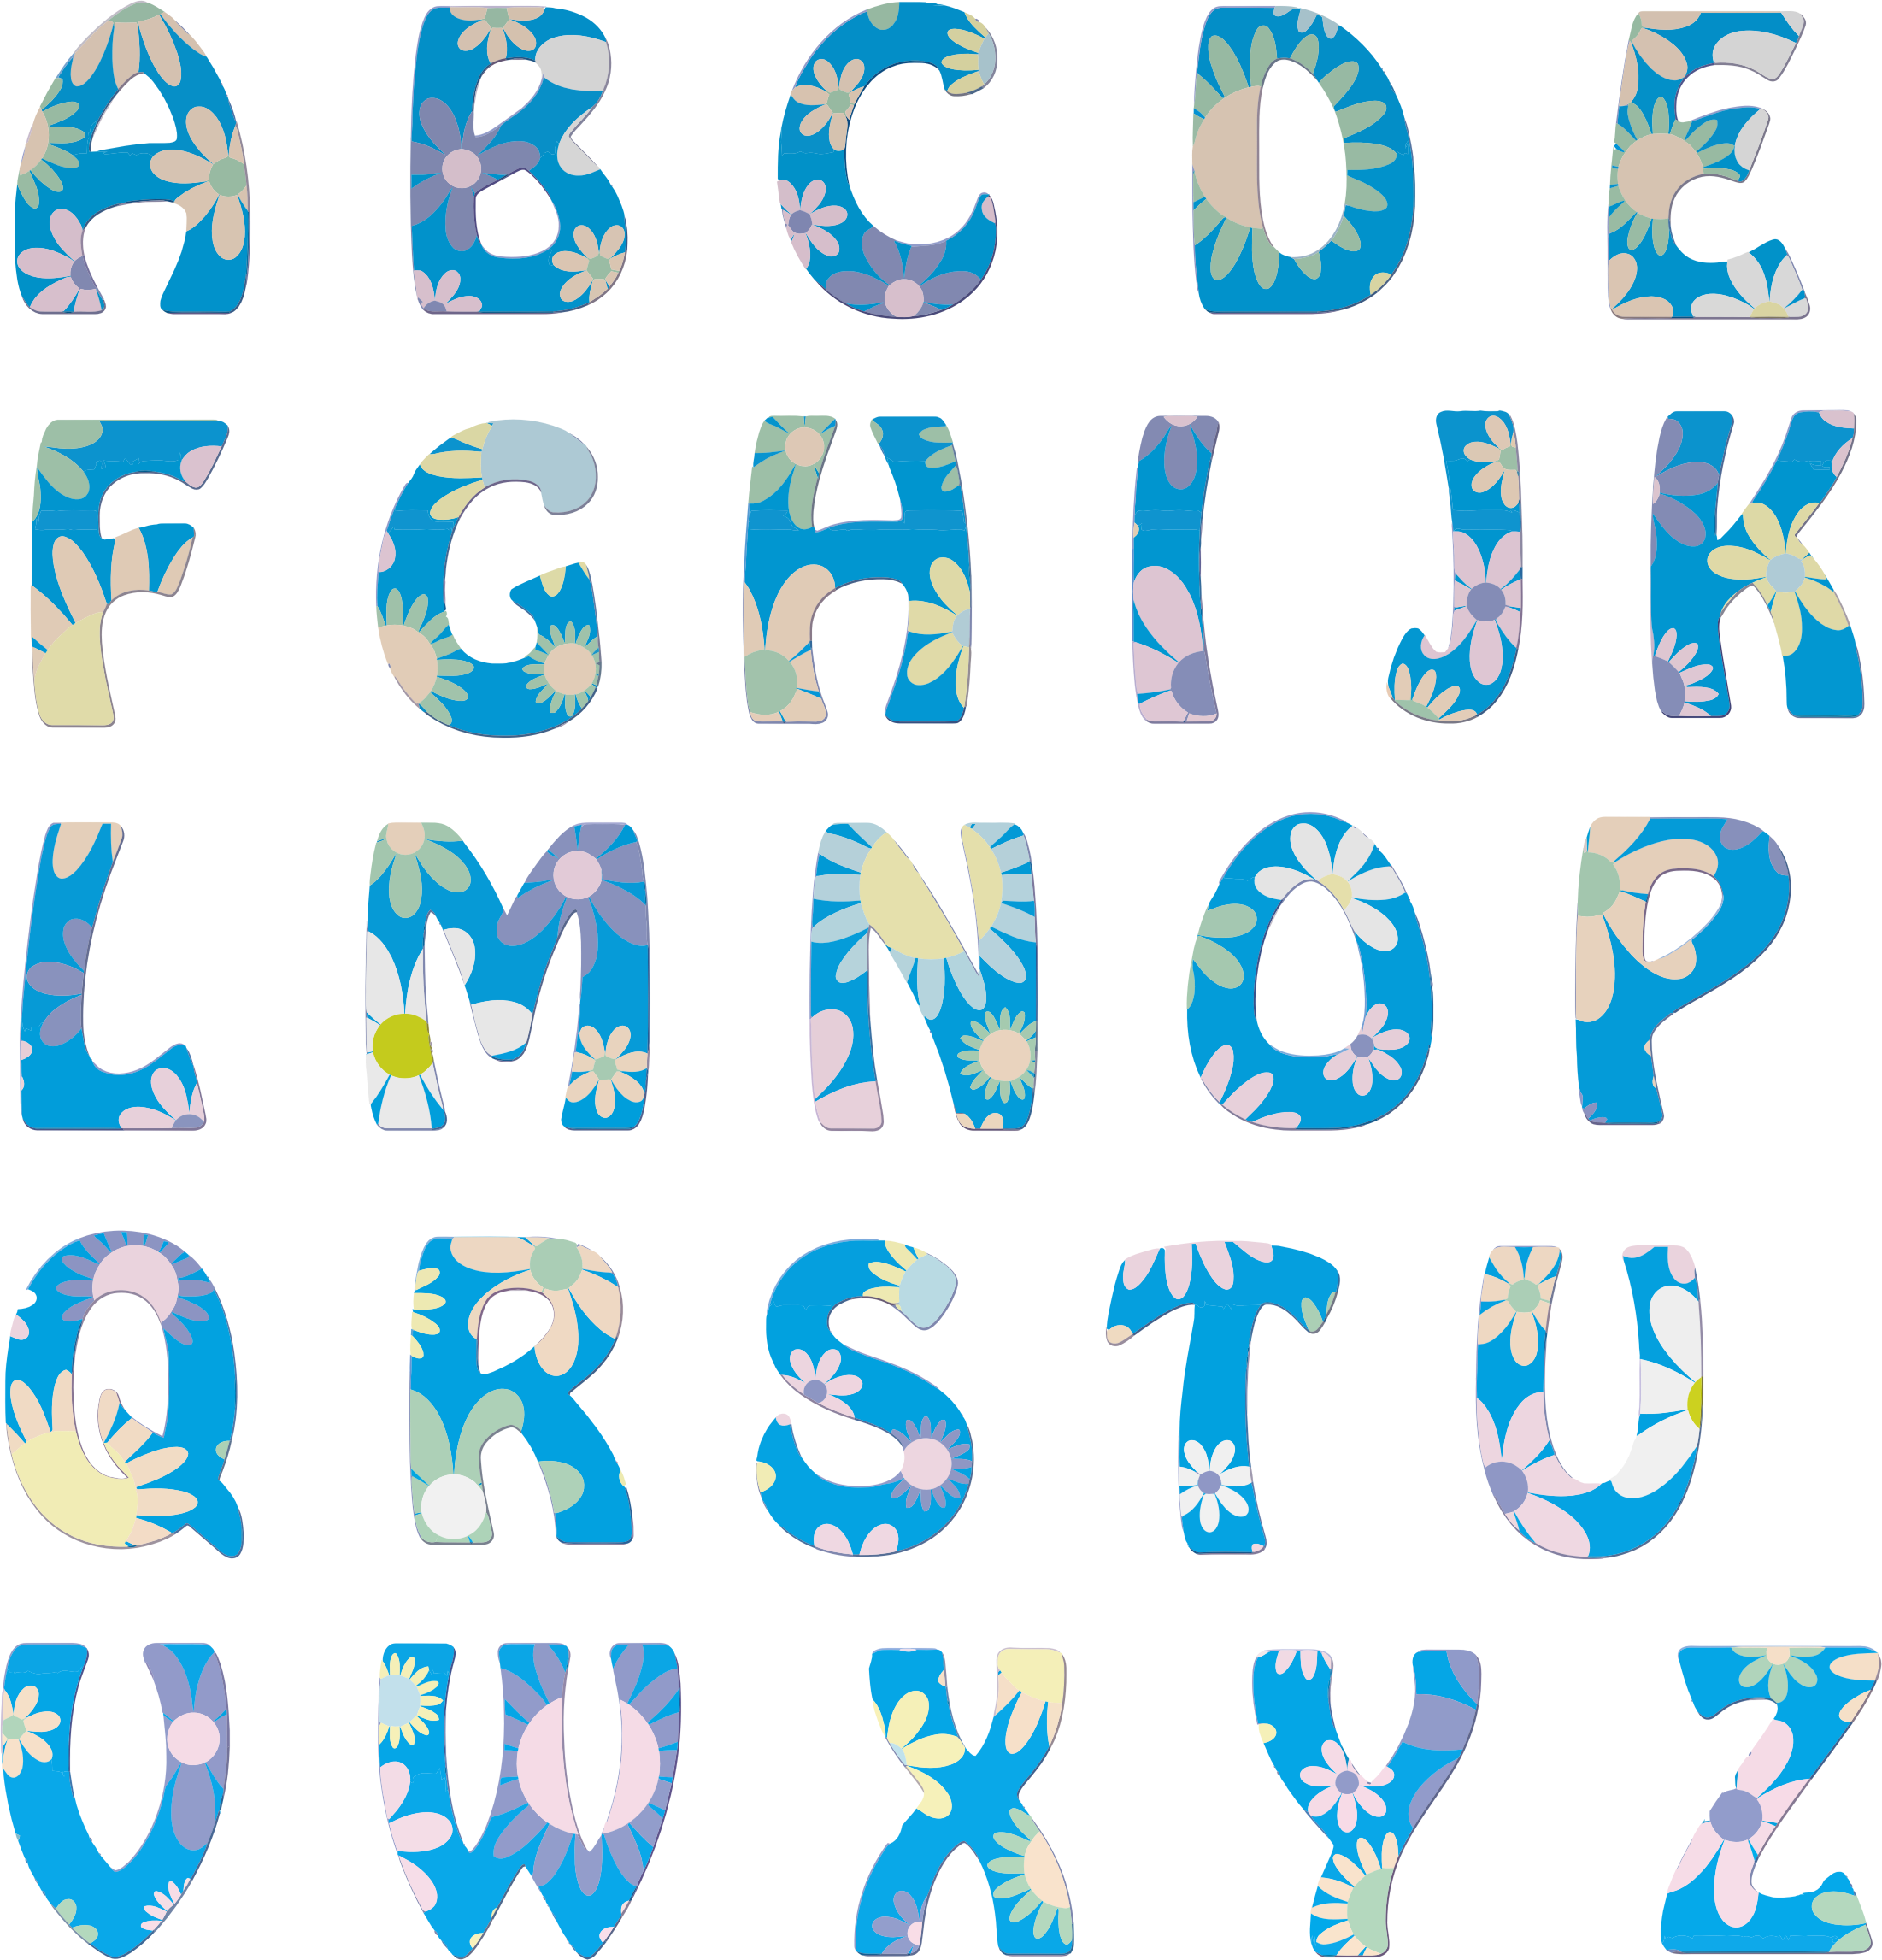 Clipart floral alphabet big image png thecheapjerseys Image collections